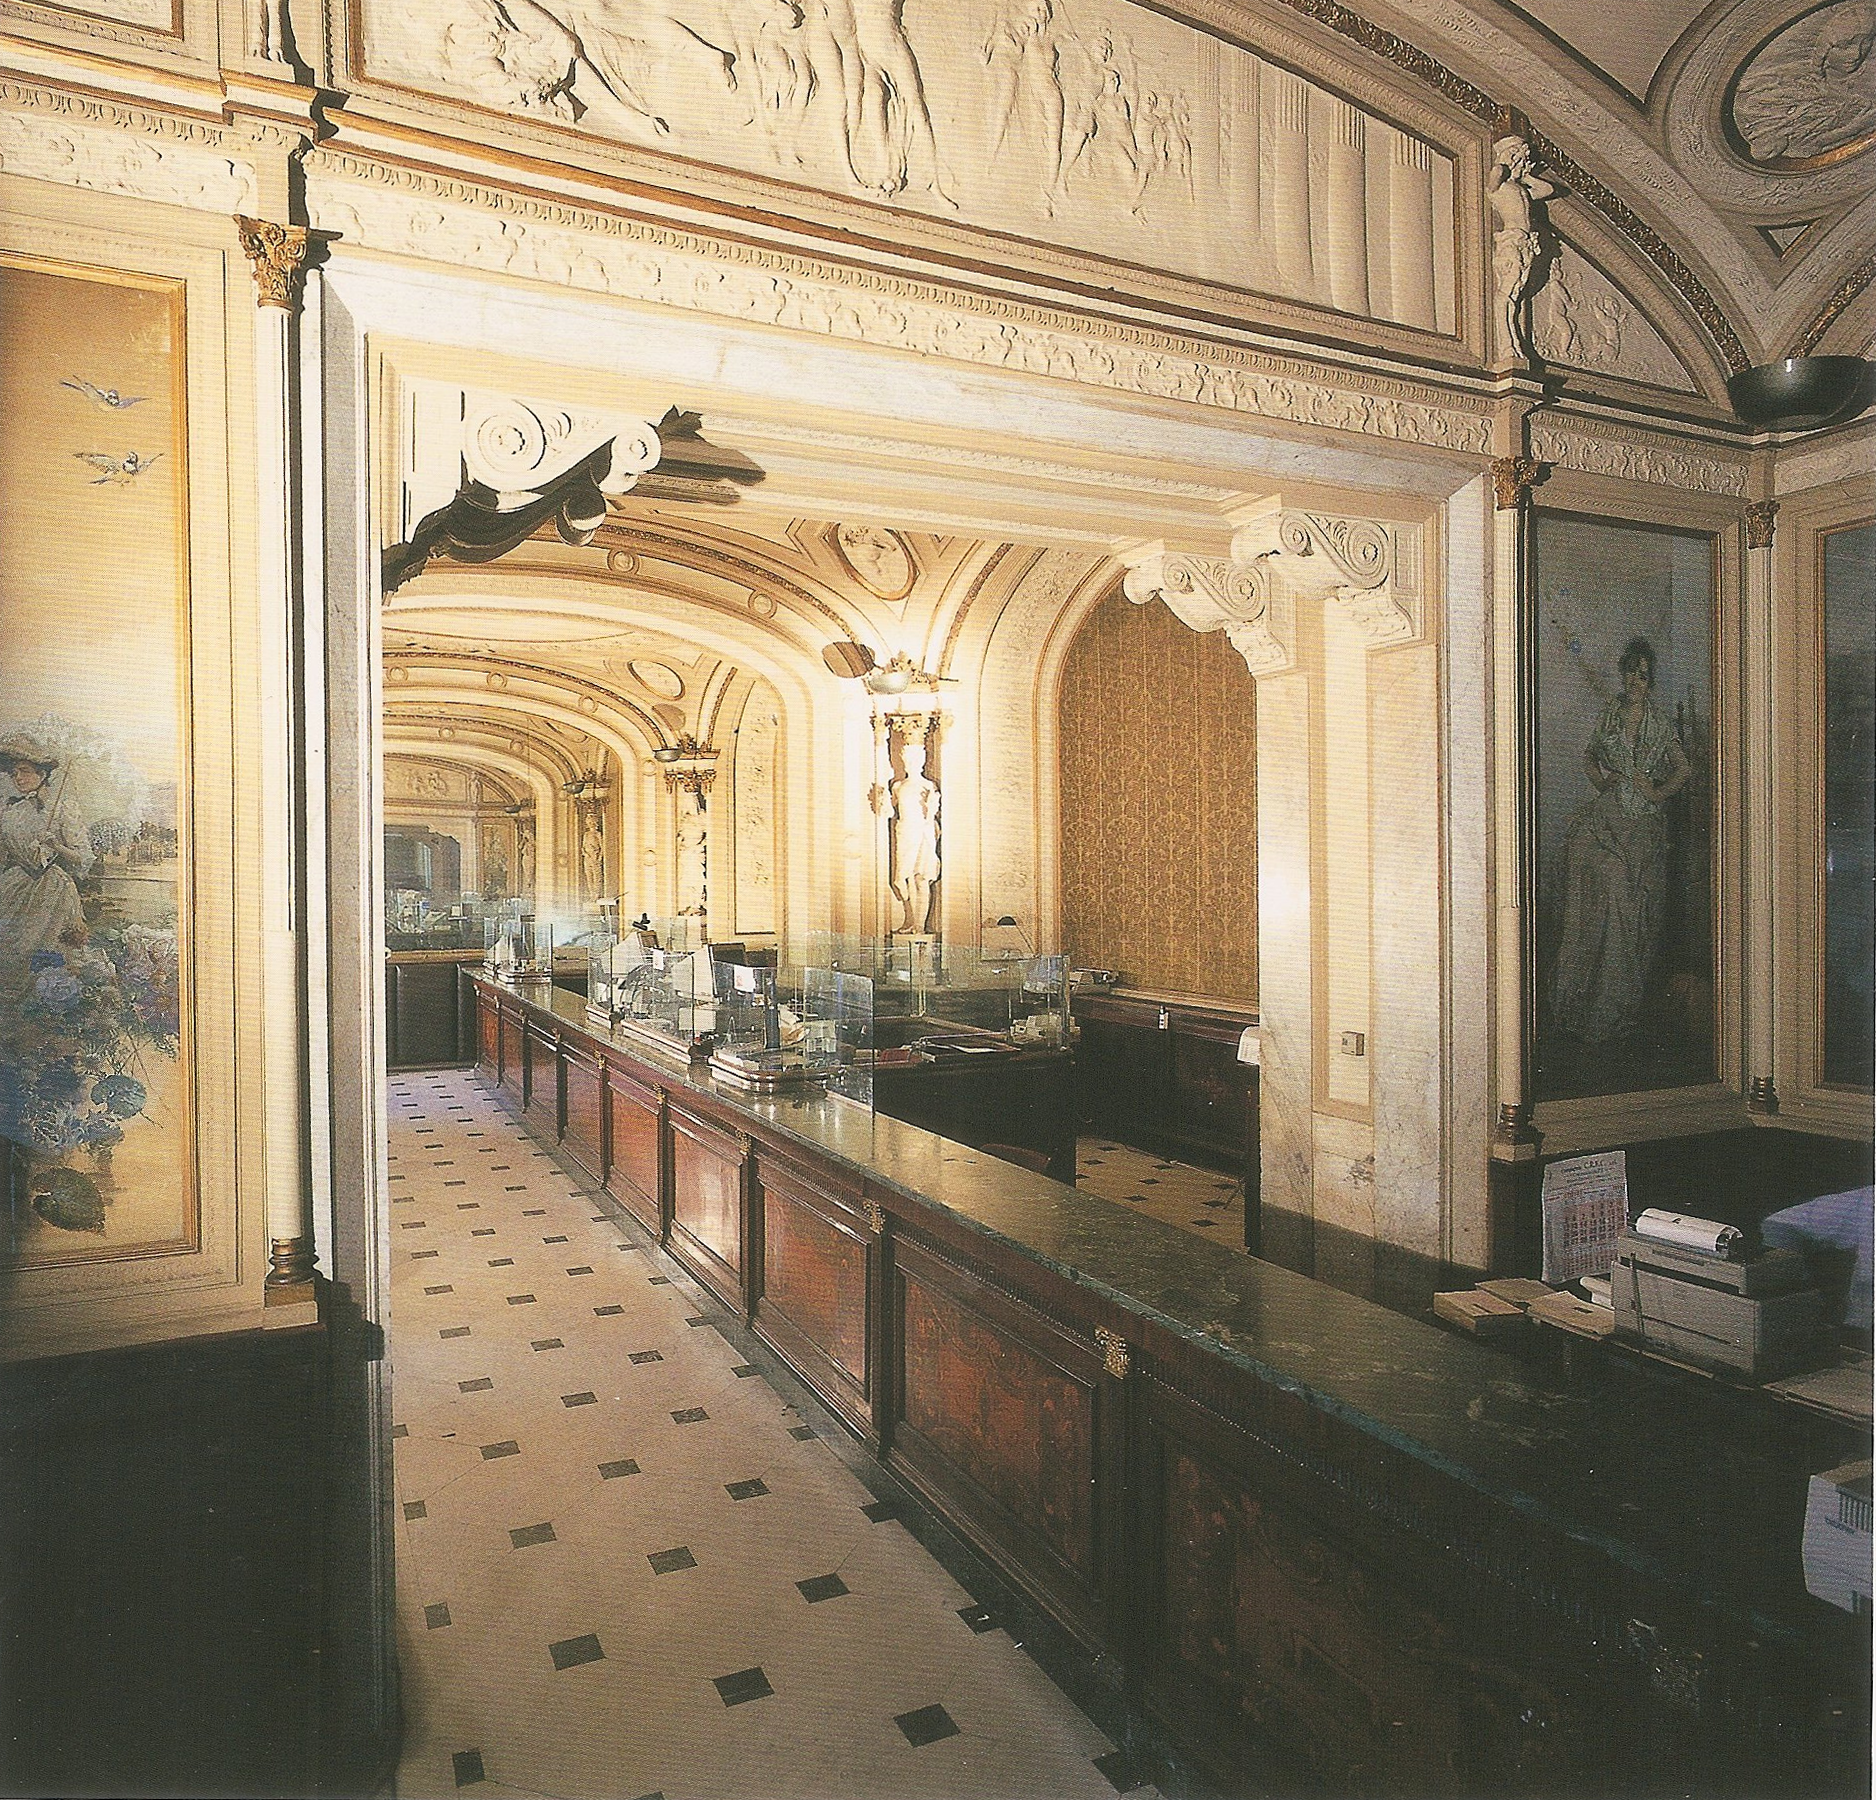 The Banco di Napoli at the Gambrinus